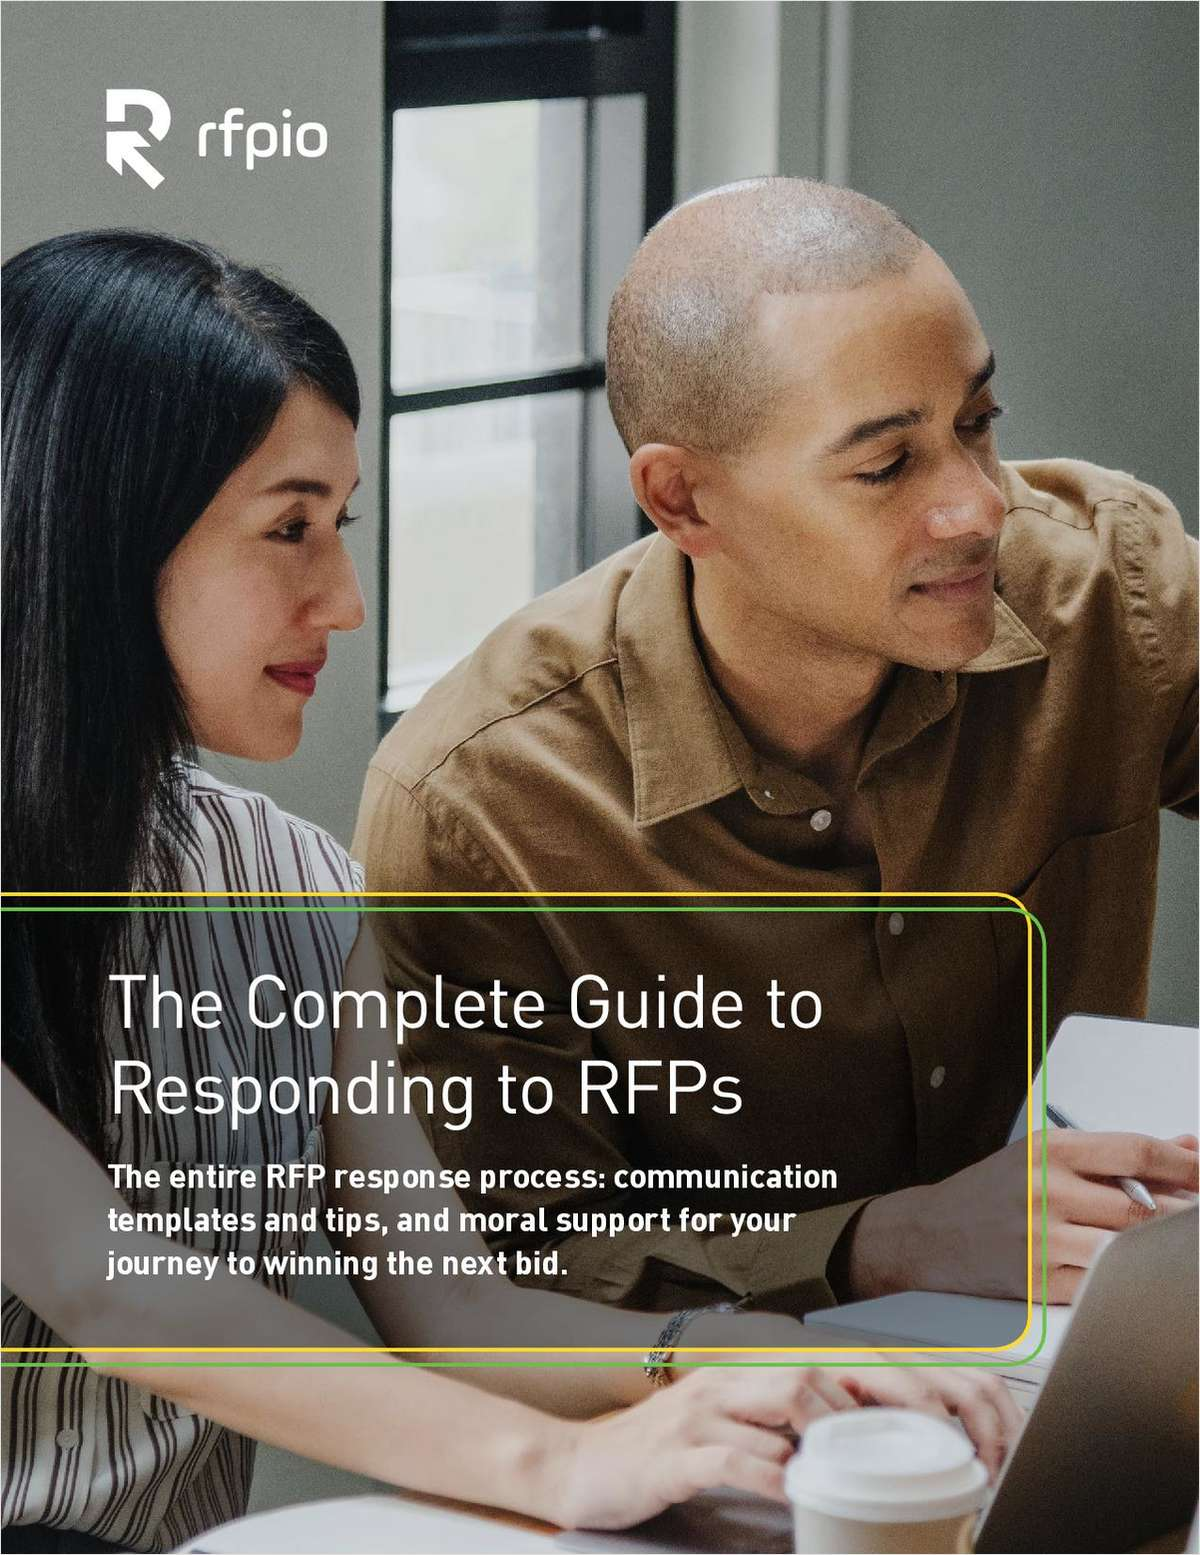 The Complete Guide to Responding to RFPs